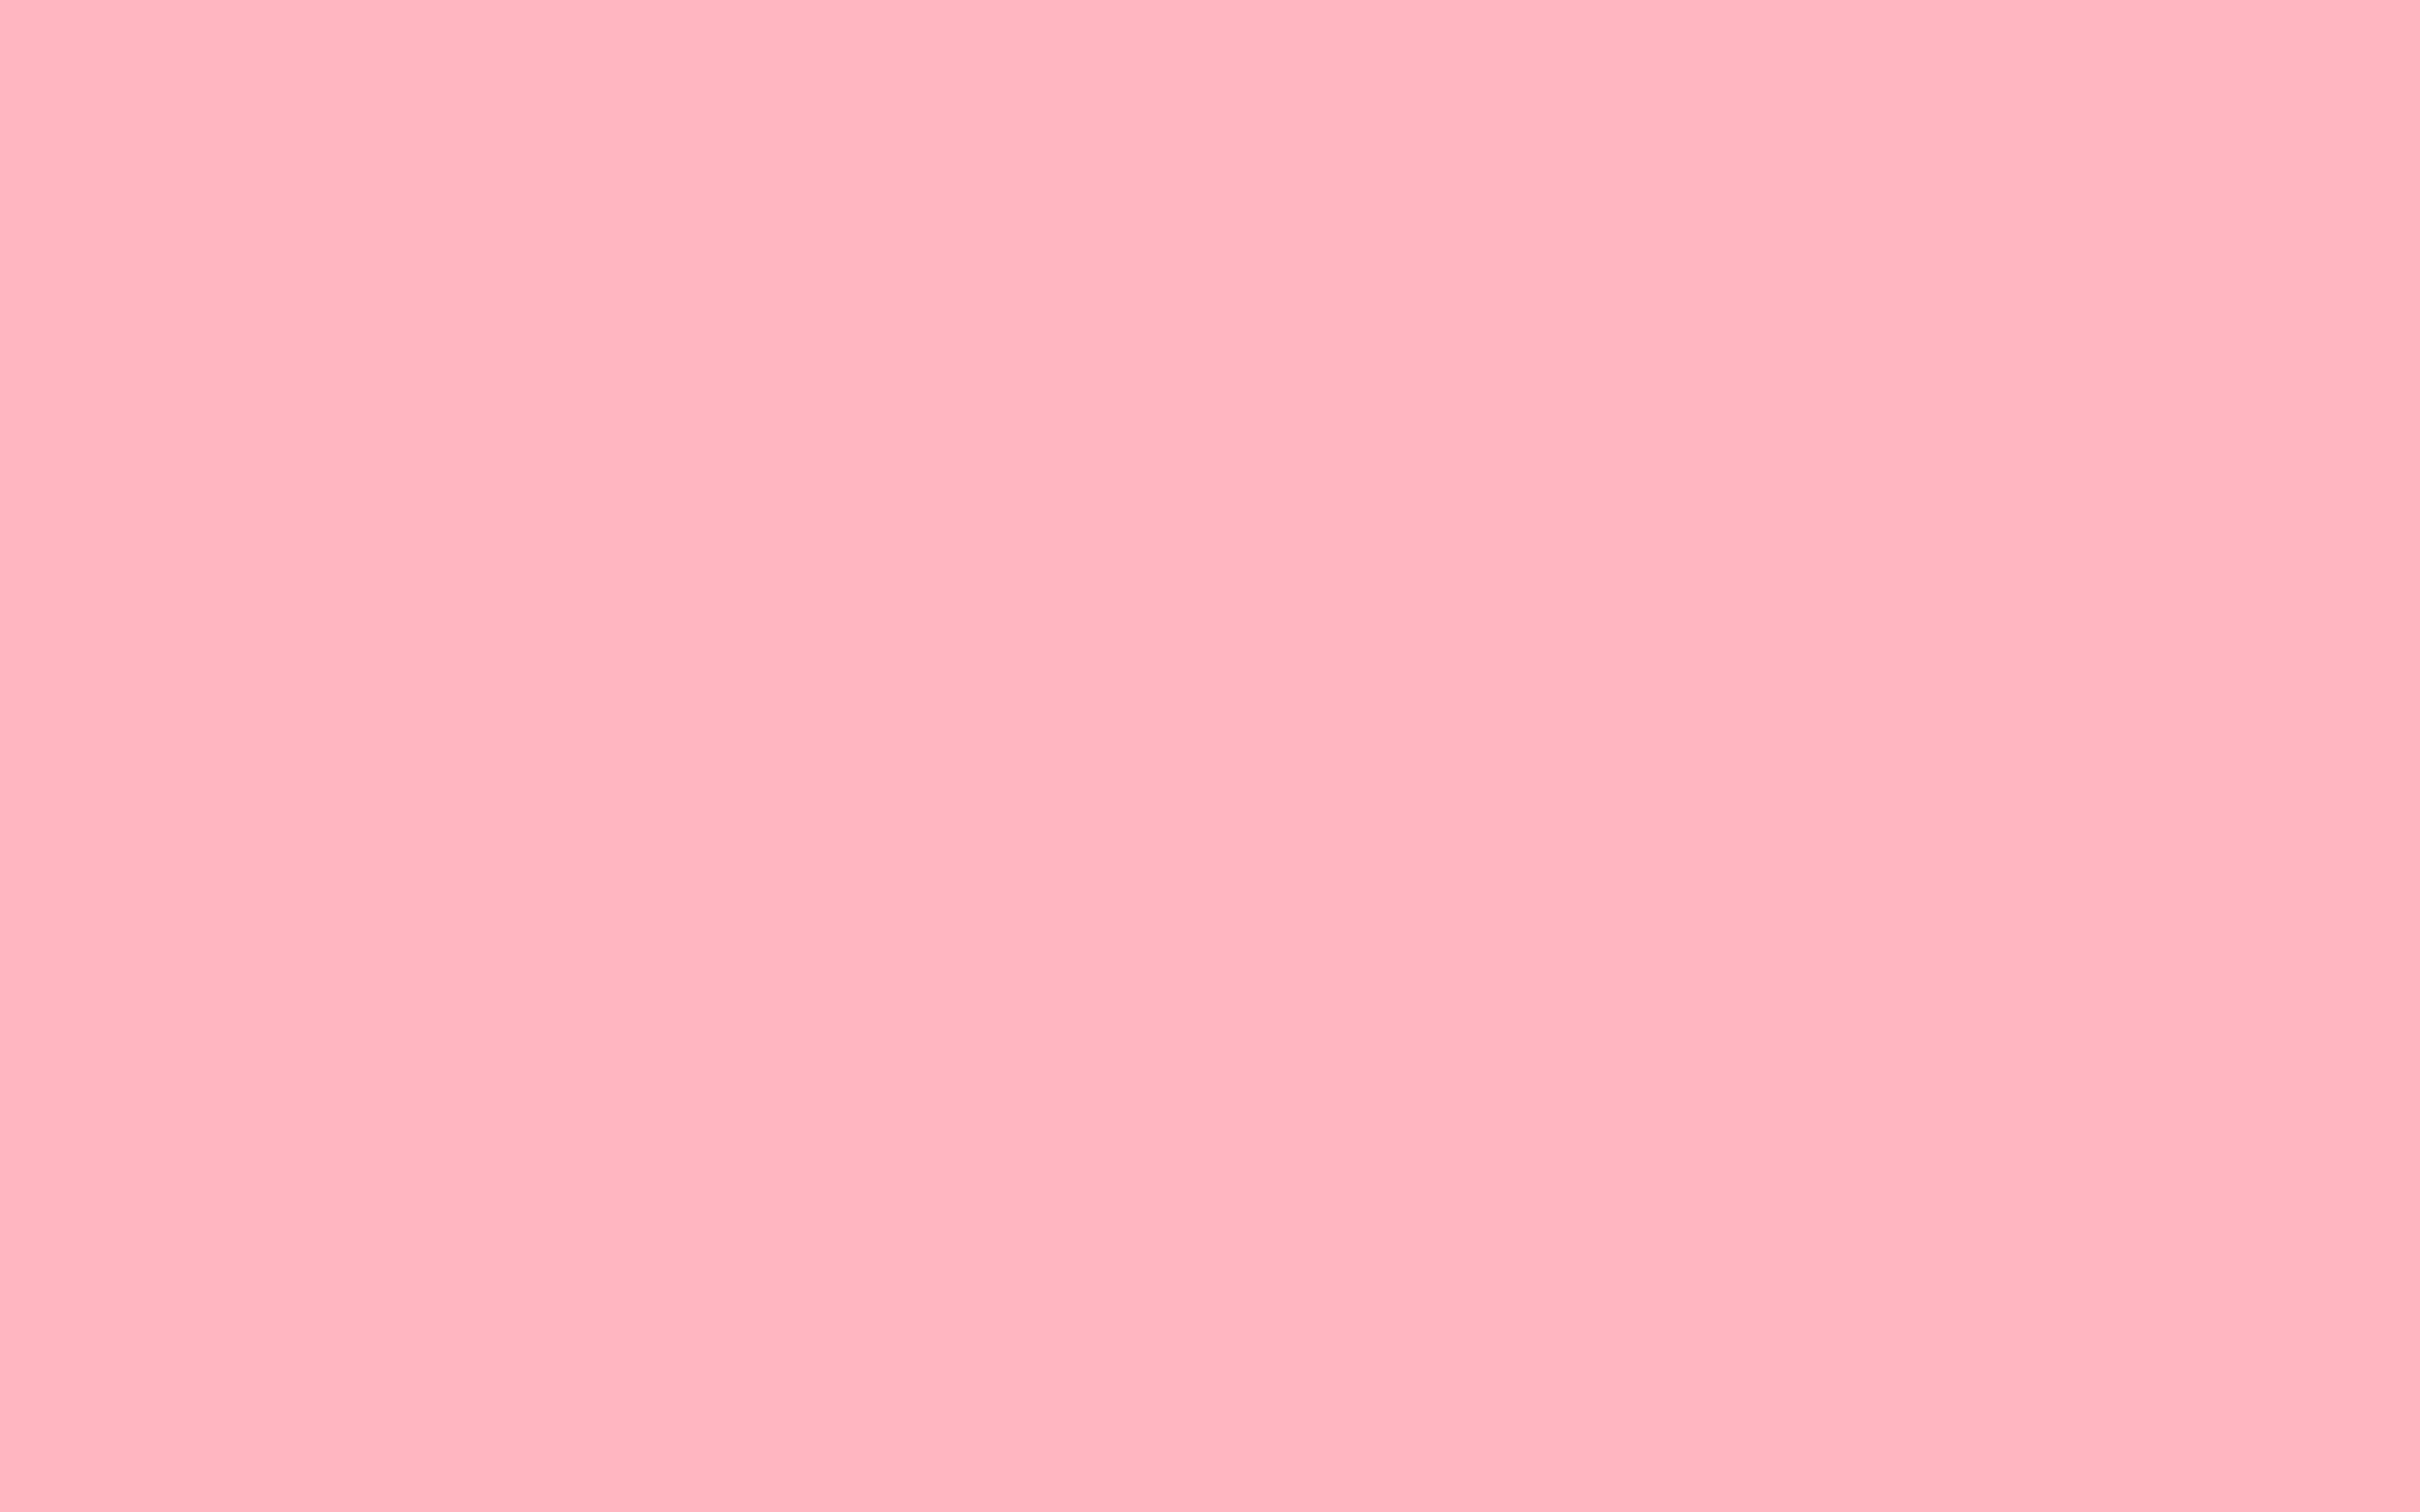 Light Pink Plain Wallpaper